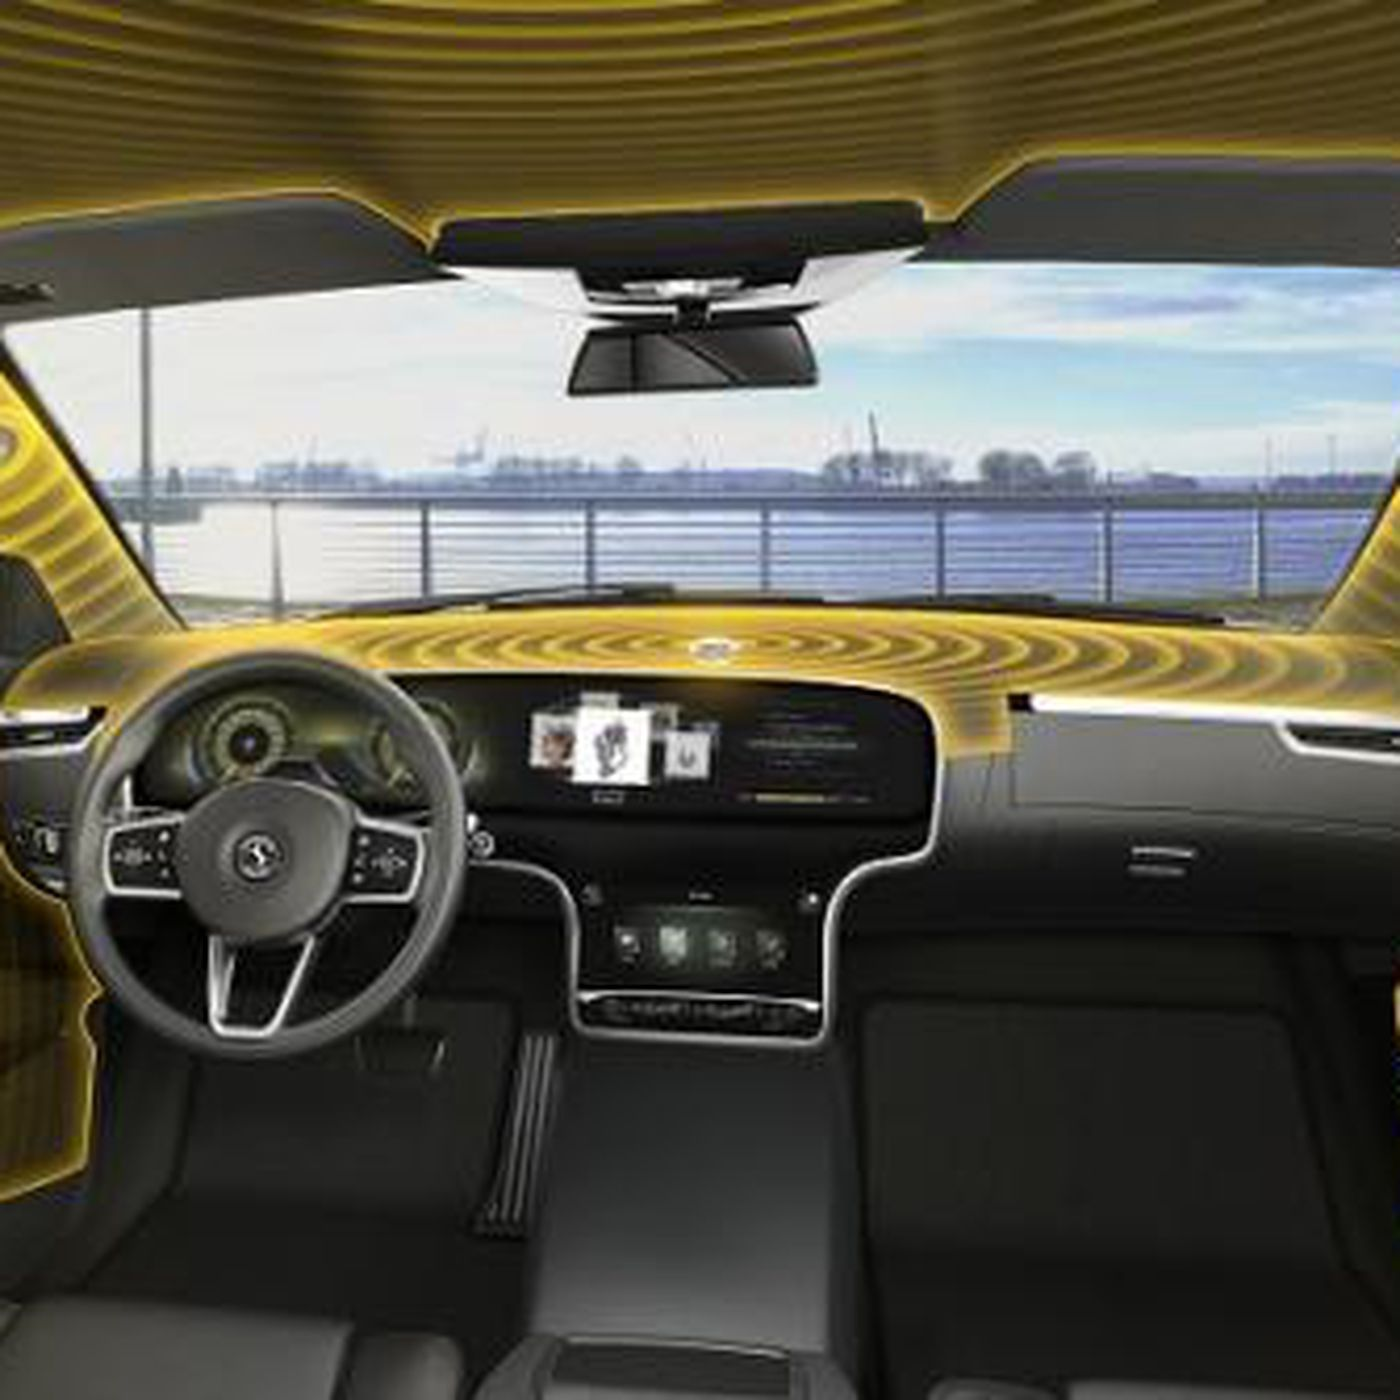 This new audio system turns your car's interior into one giant